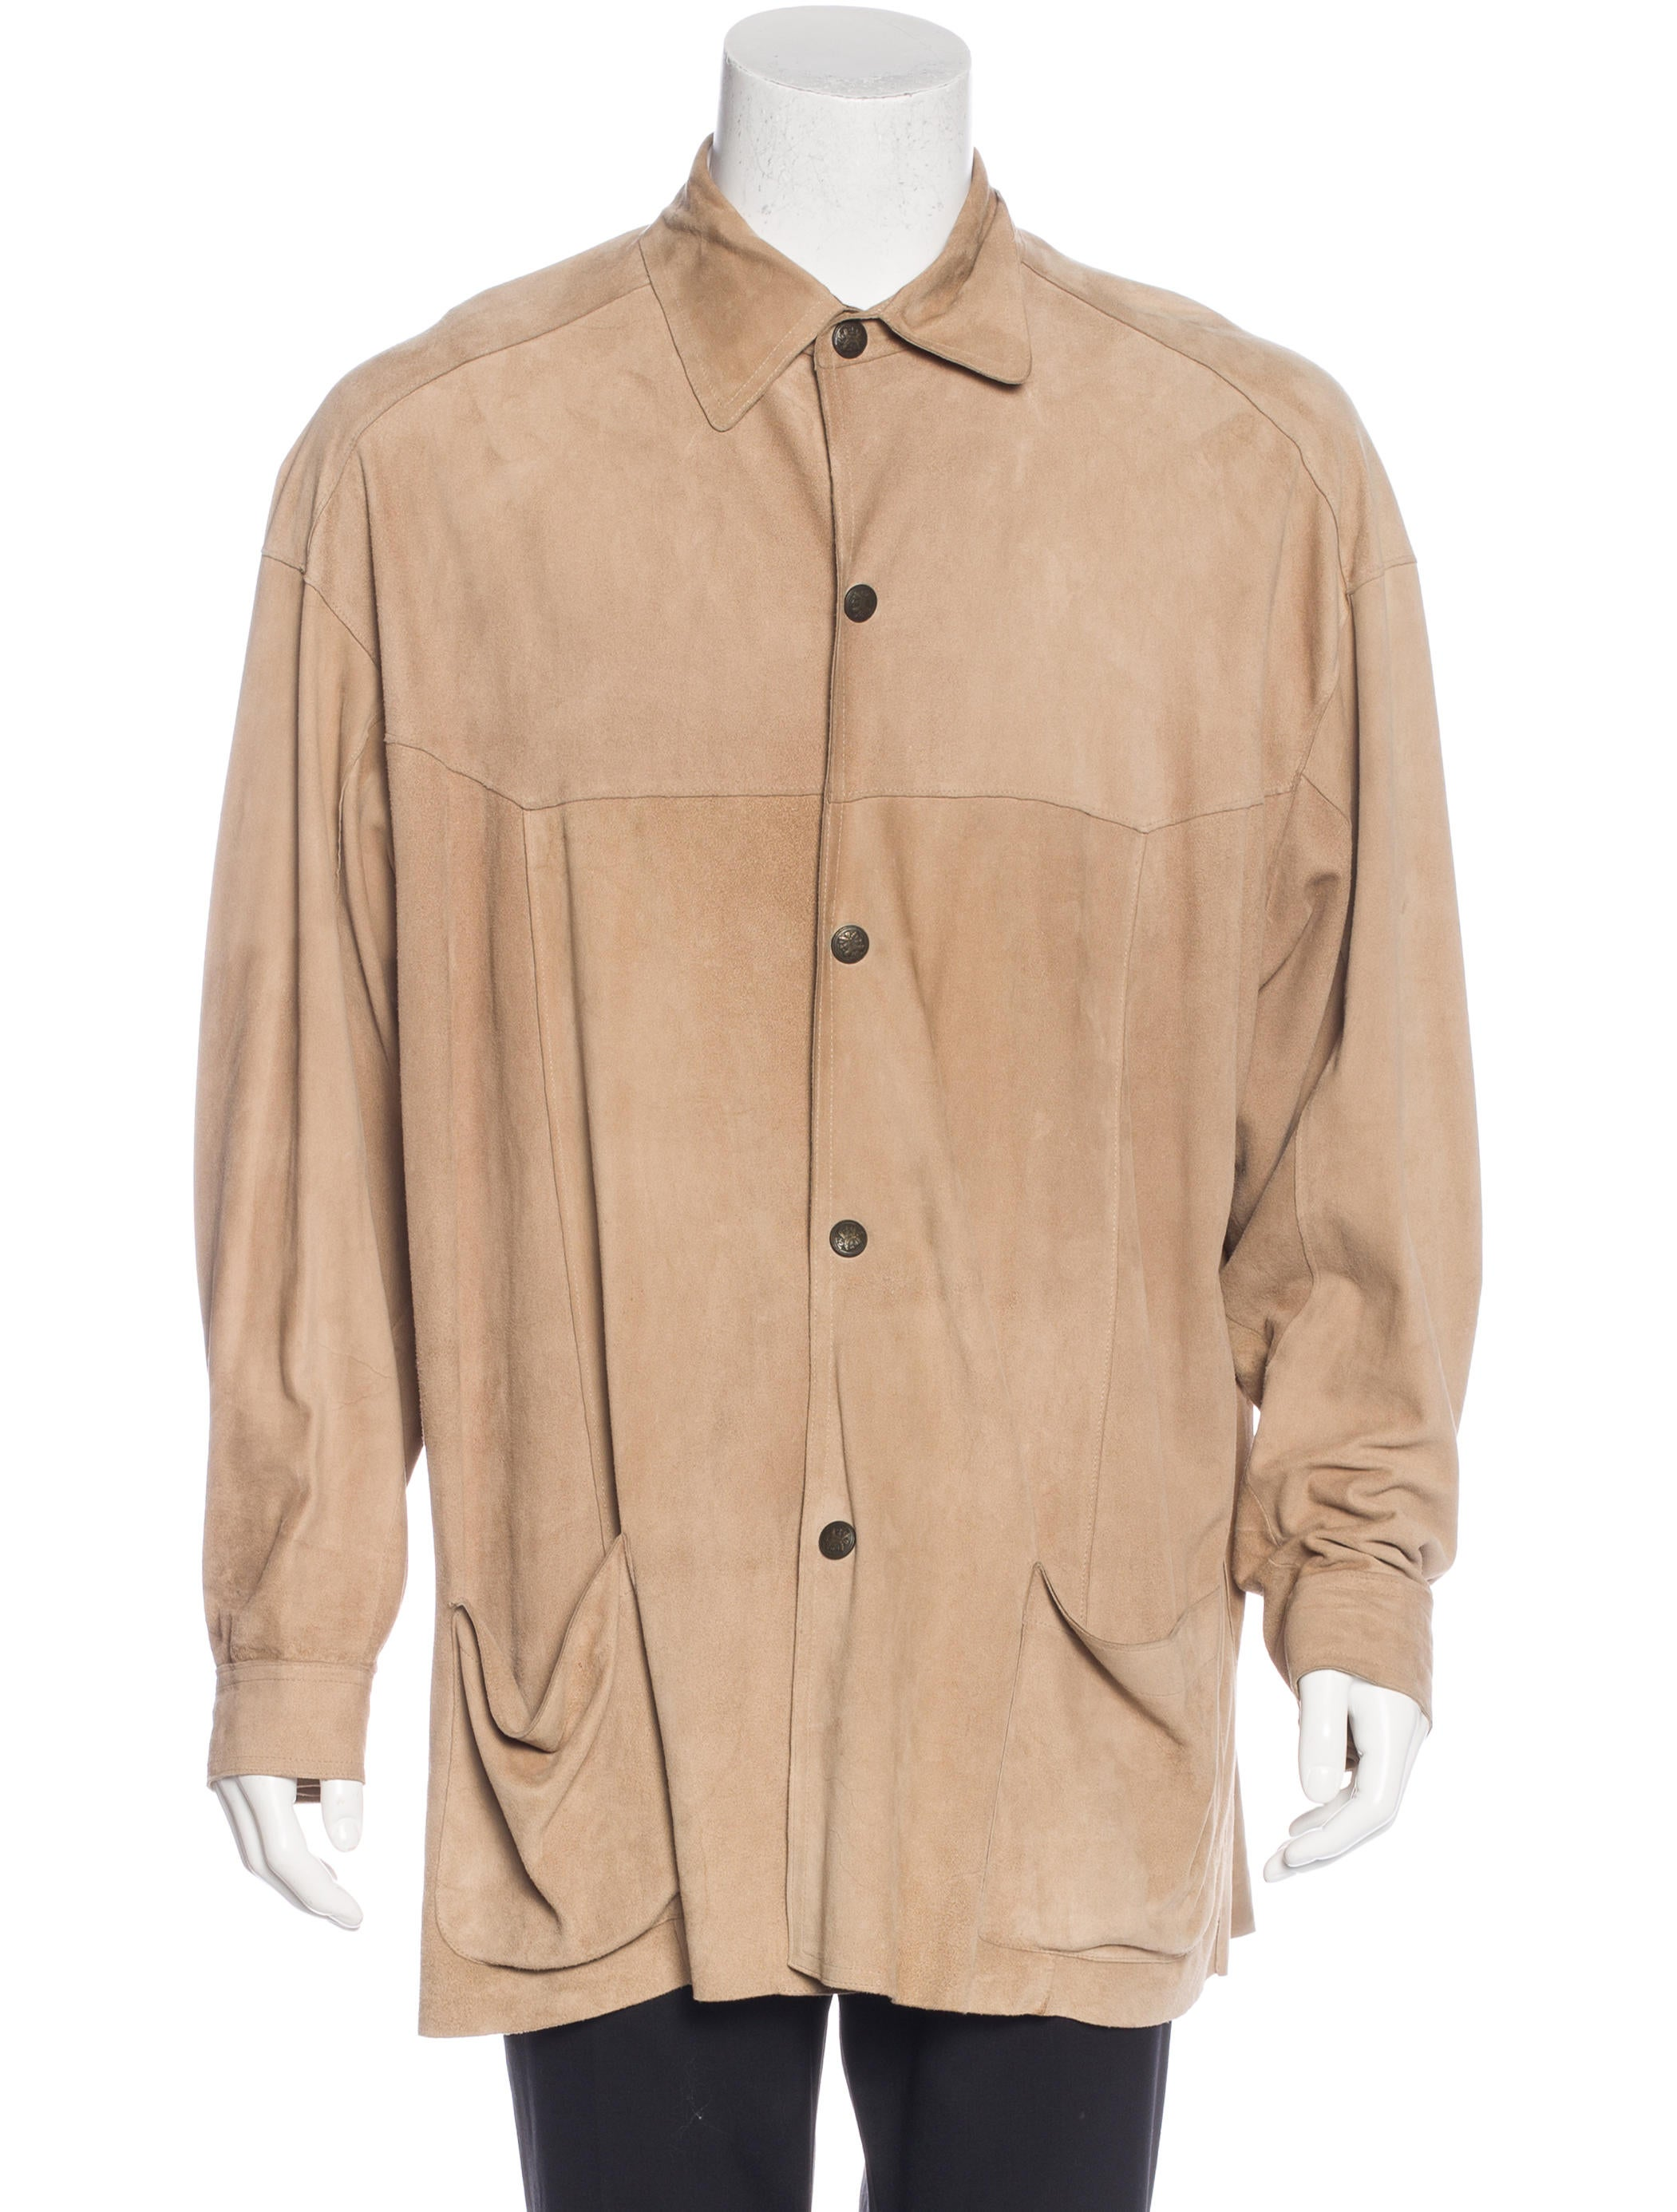 Fendi Suede Shirt Jacket Clothing Fen56469 The Realreal